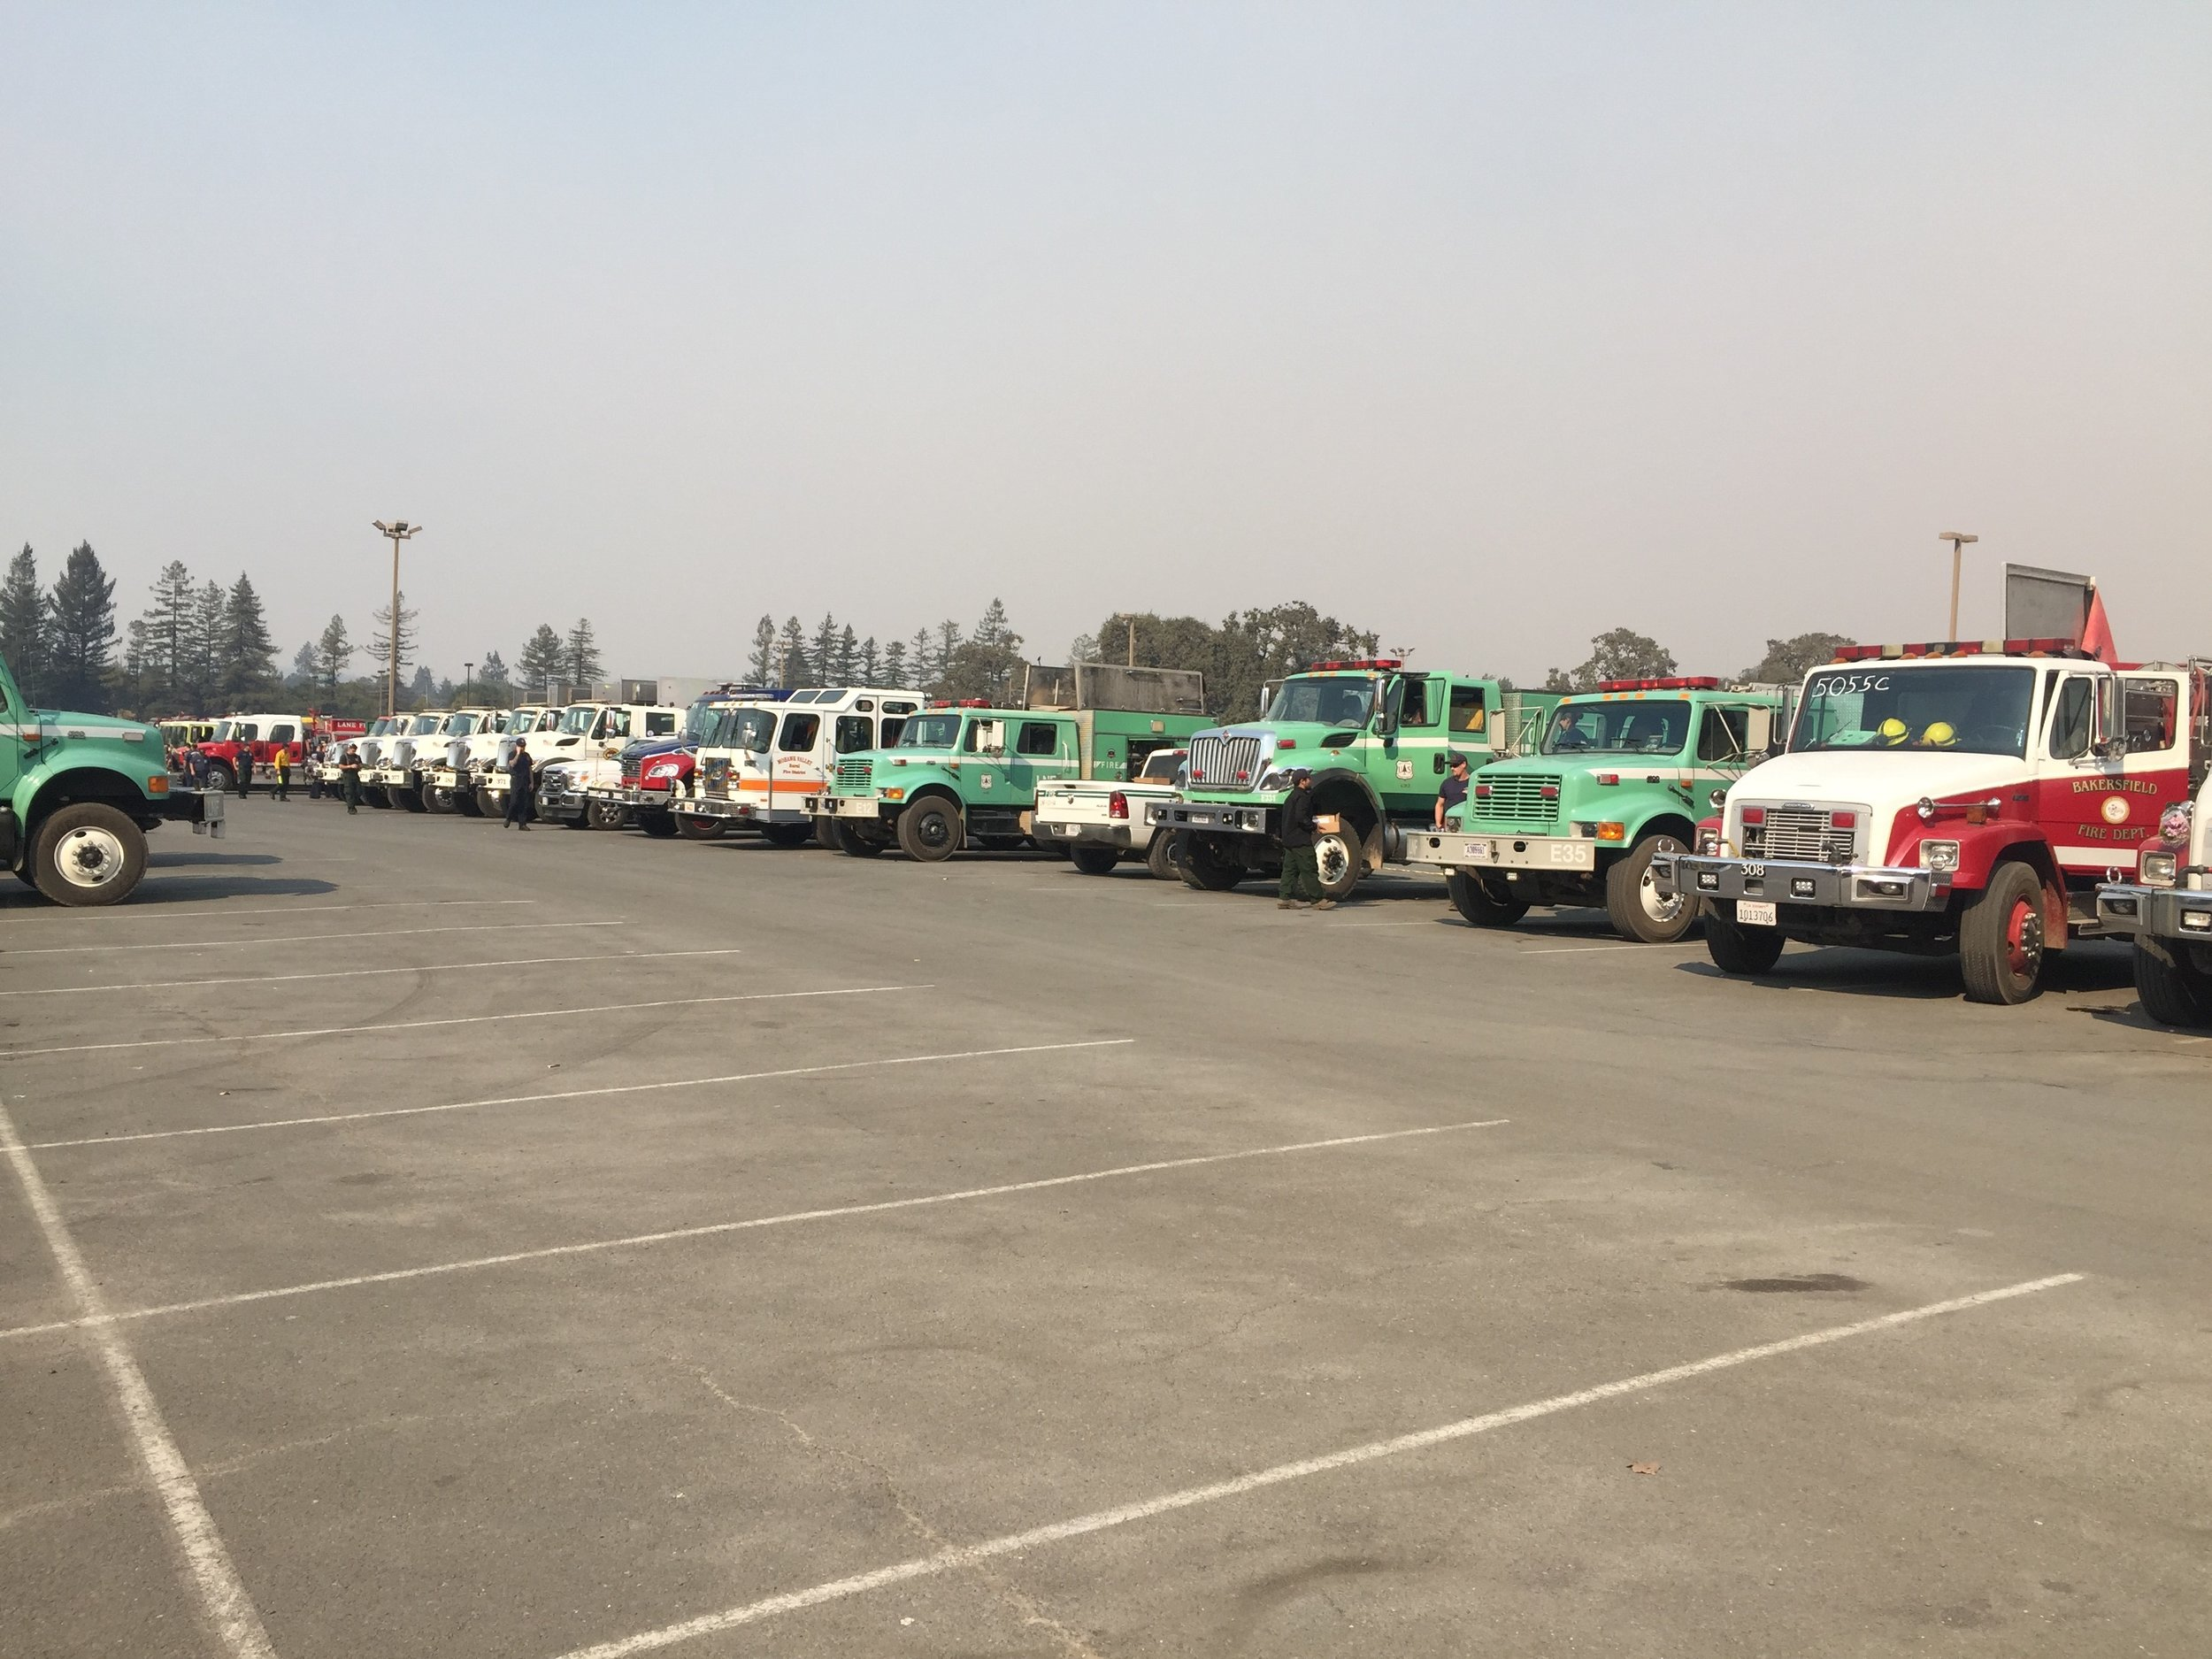 Santa Monica Fairgrounds Response Center Northbay fires.jpg